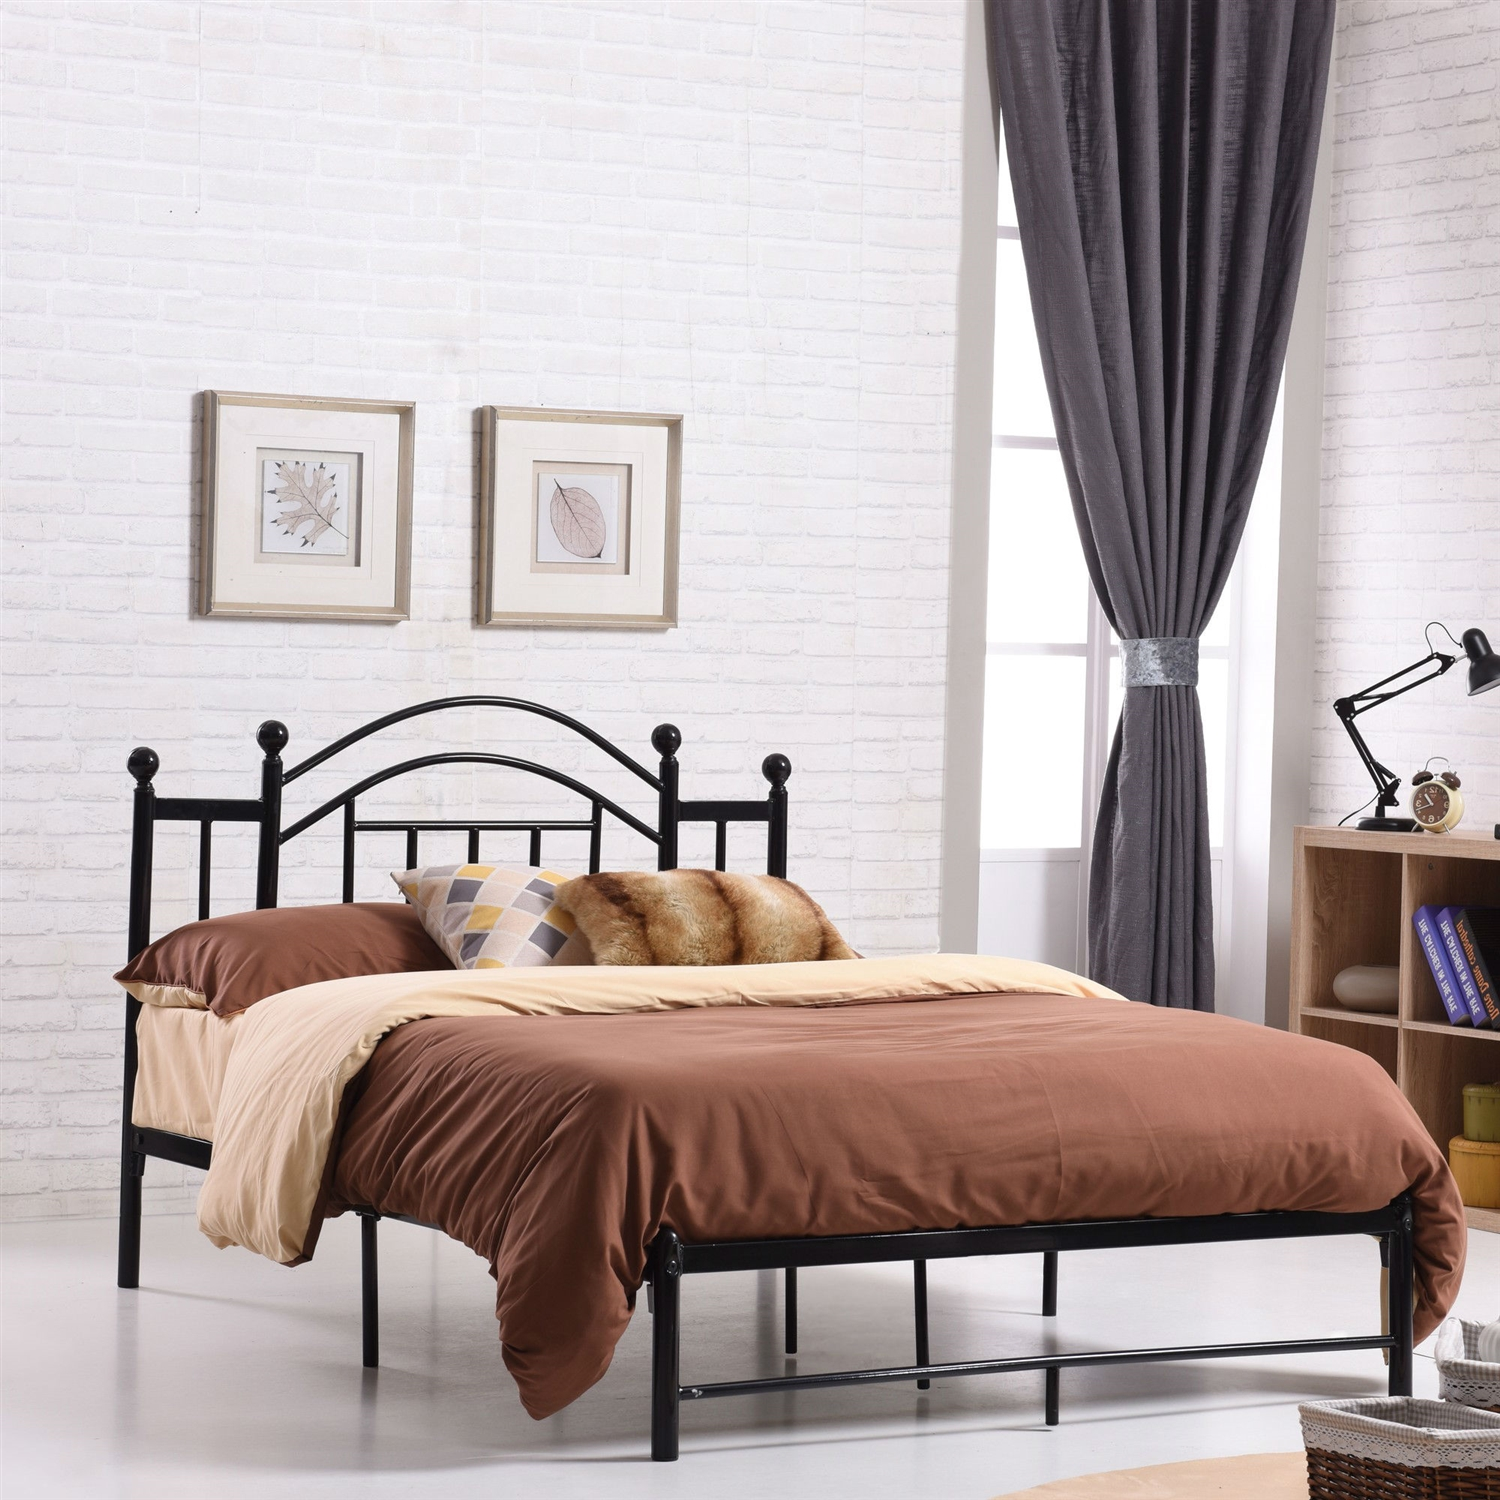 full size black platform bed frame with metal slats and headboard - Black Platform Bed Frame